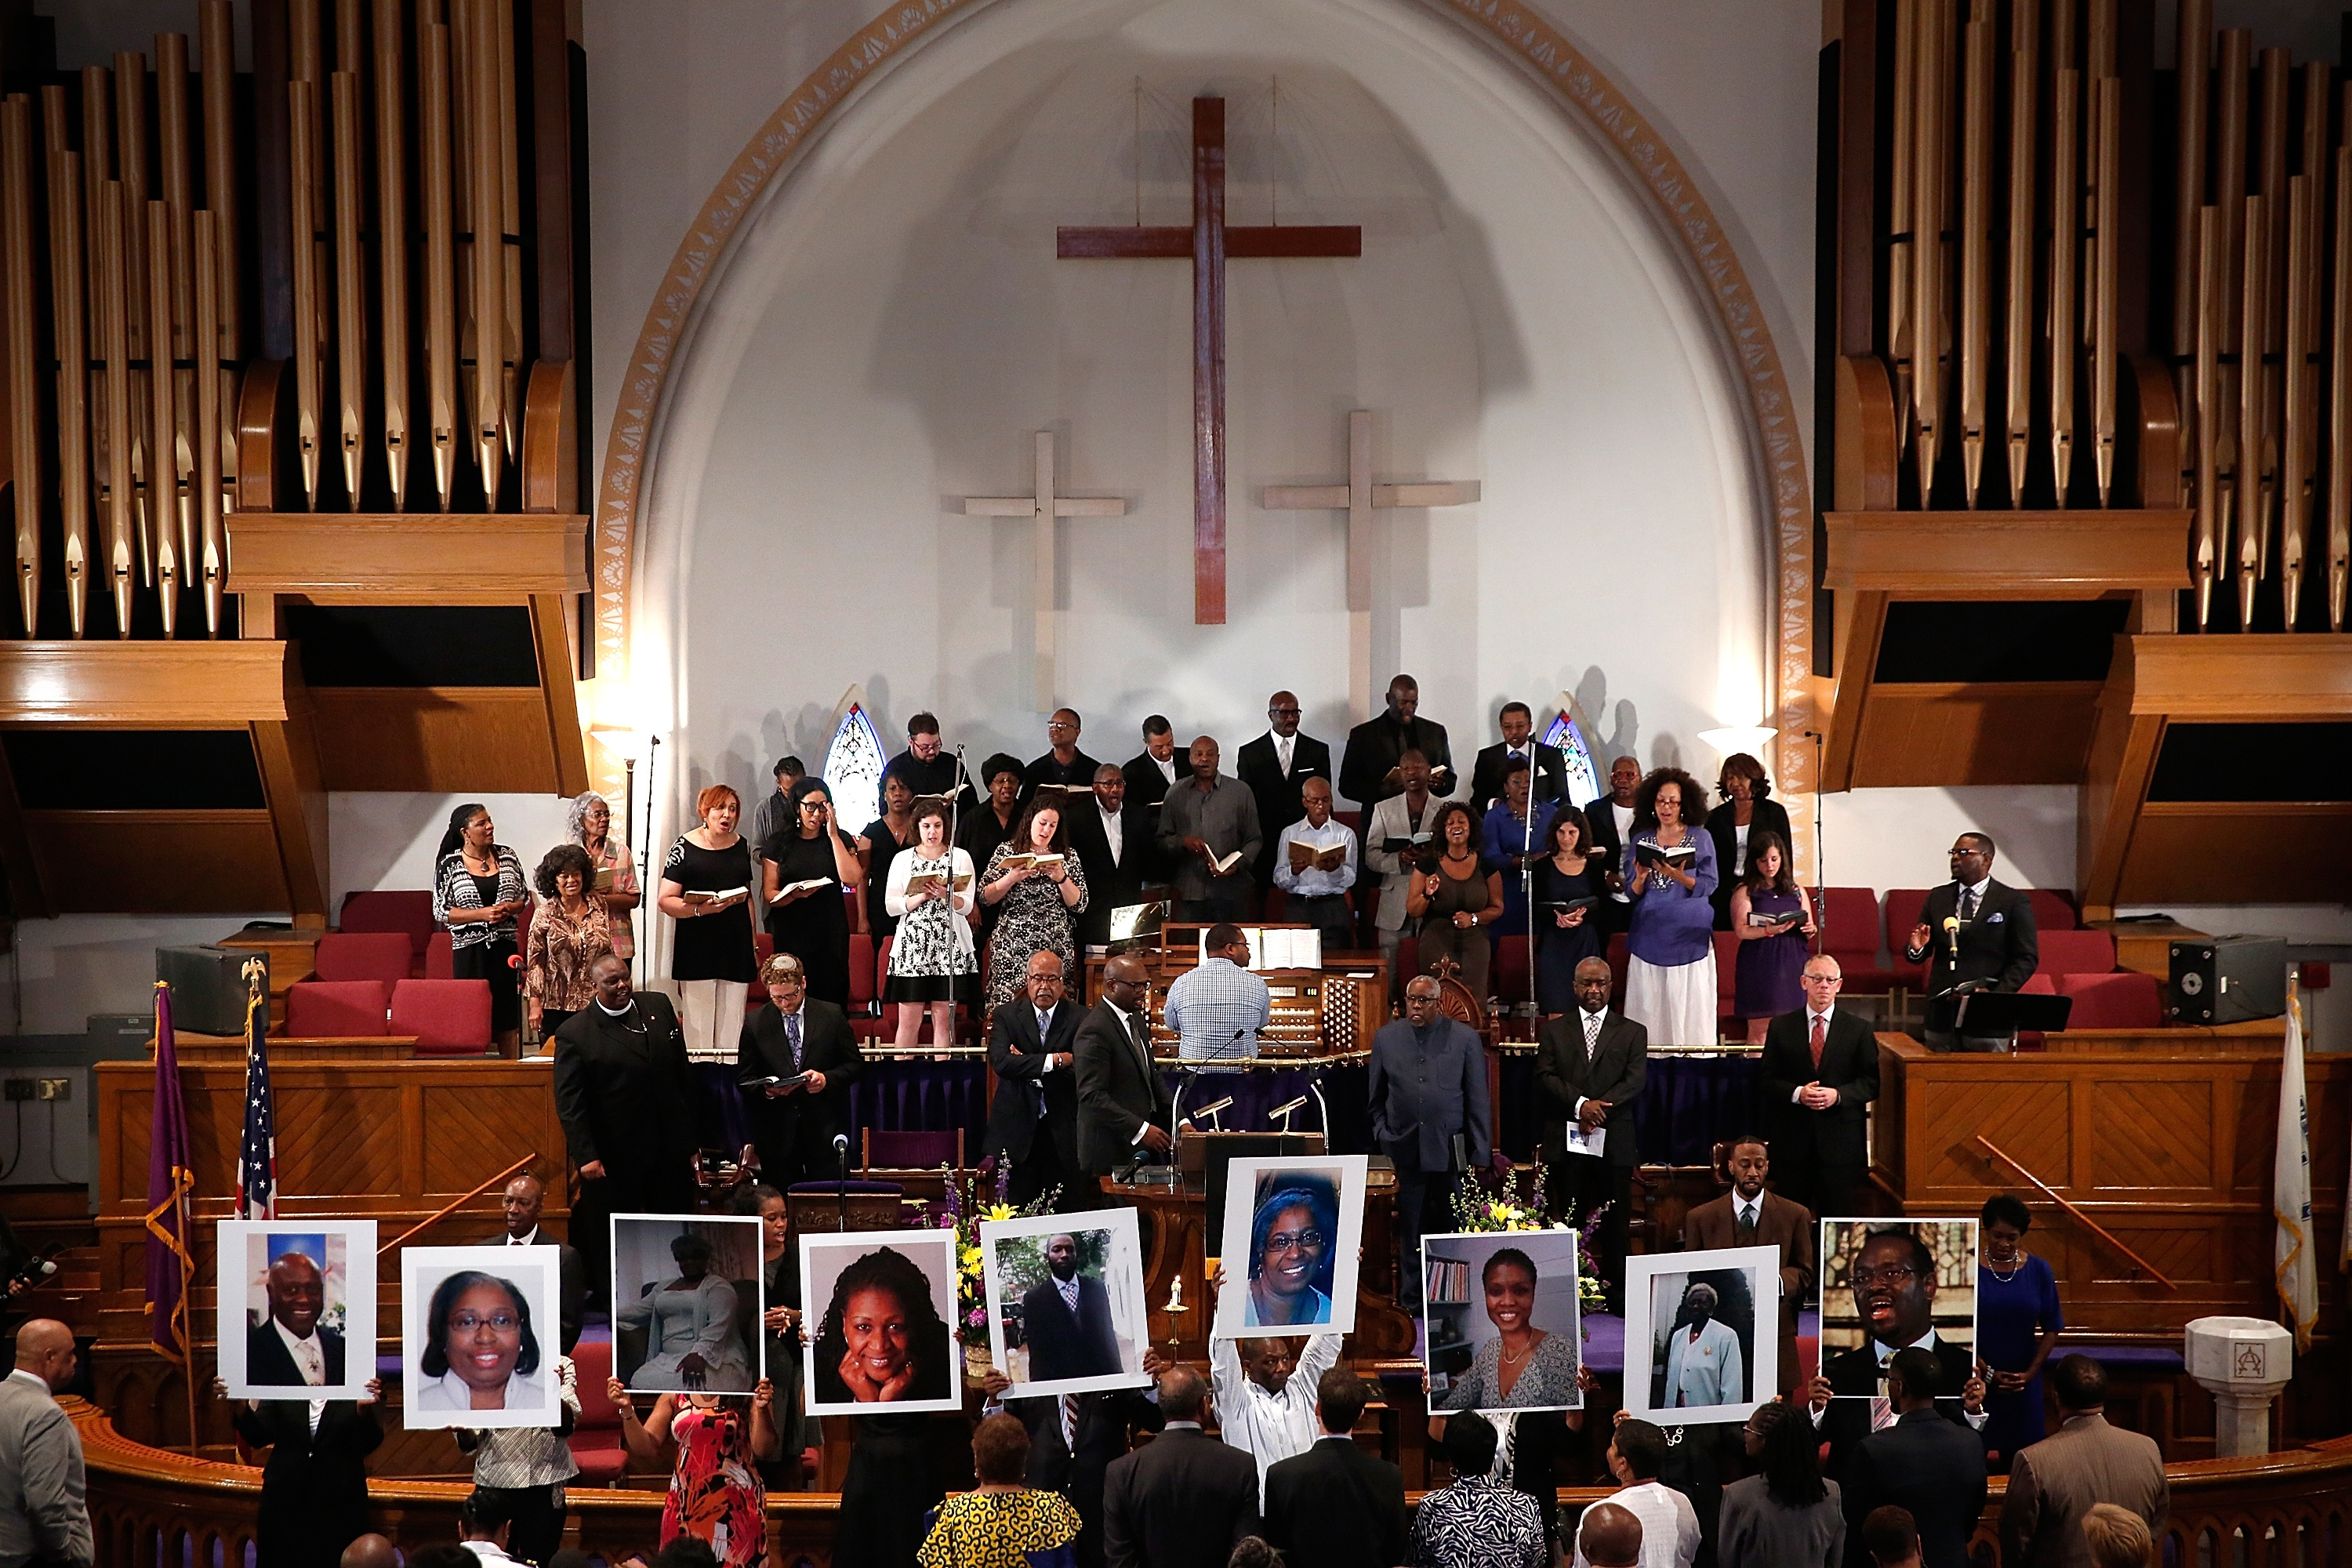 Congregants hold up photos of the victims of the church shooting in Charleston during a prayer vigil at the Friday at the the Metropolitan AME Church in Washington, D.C. (Getty Images)